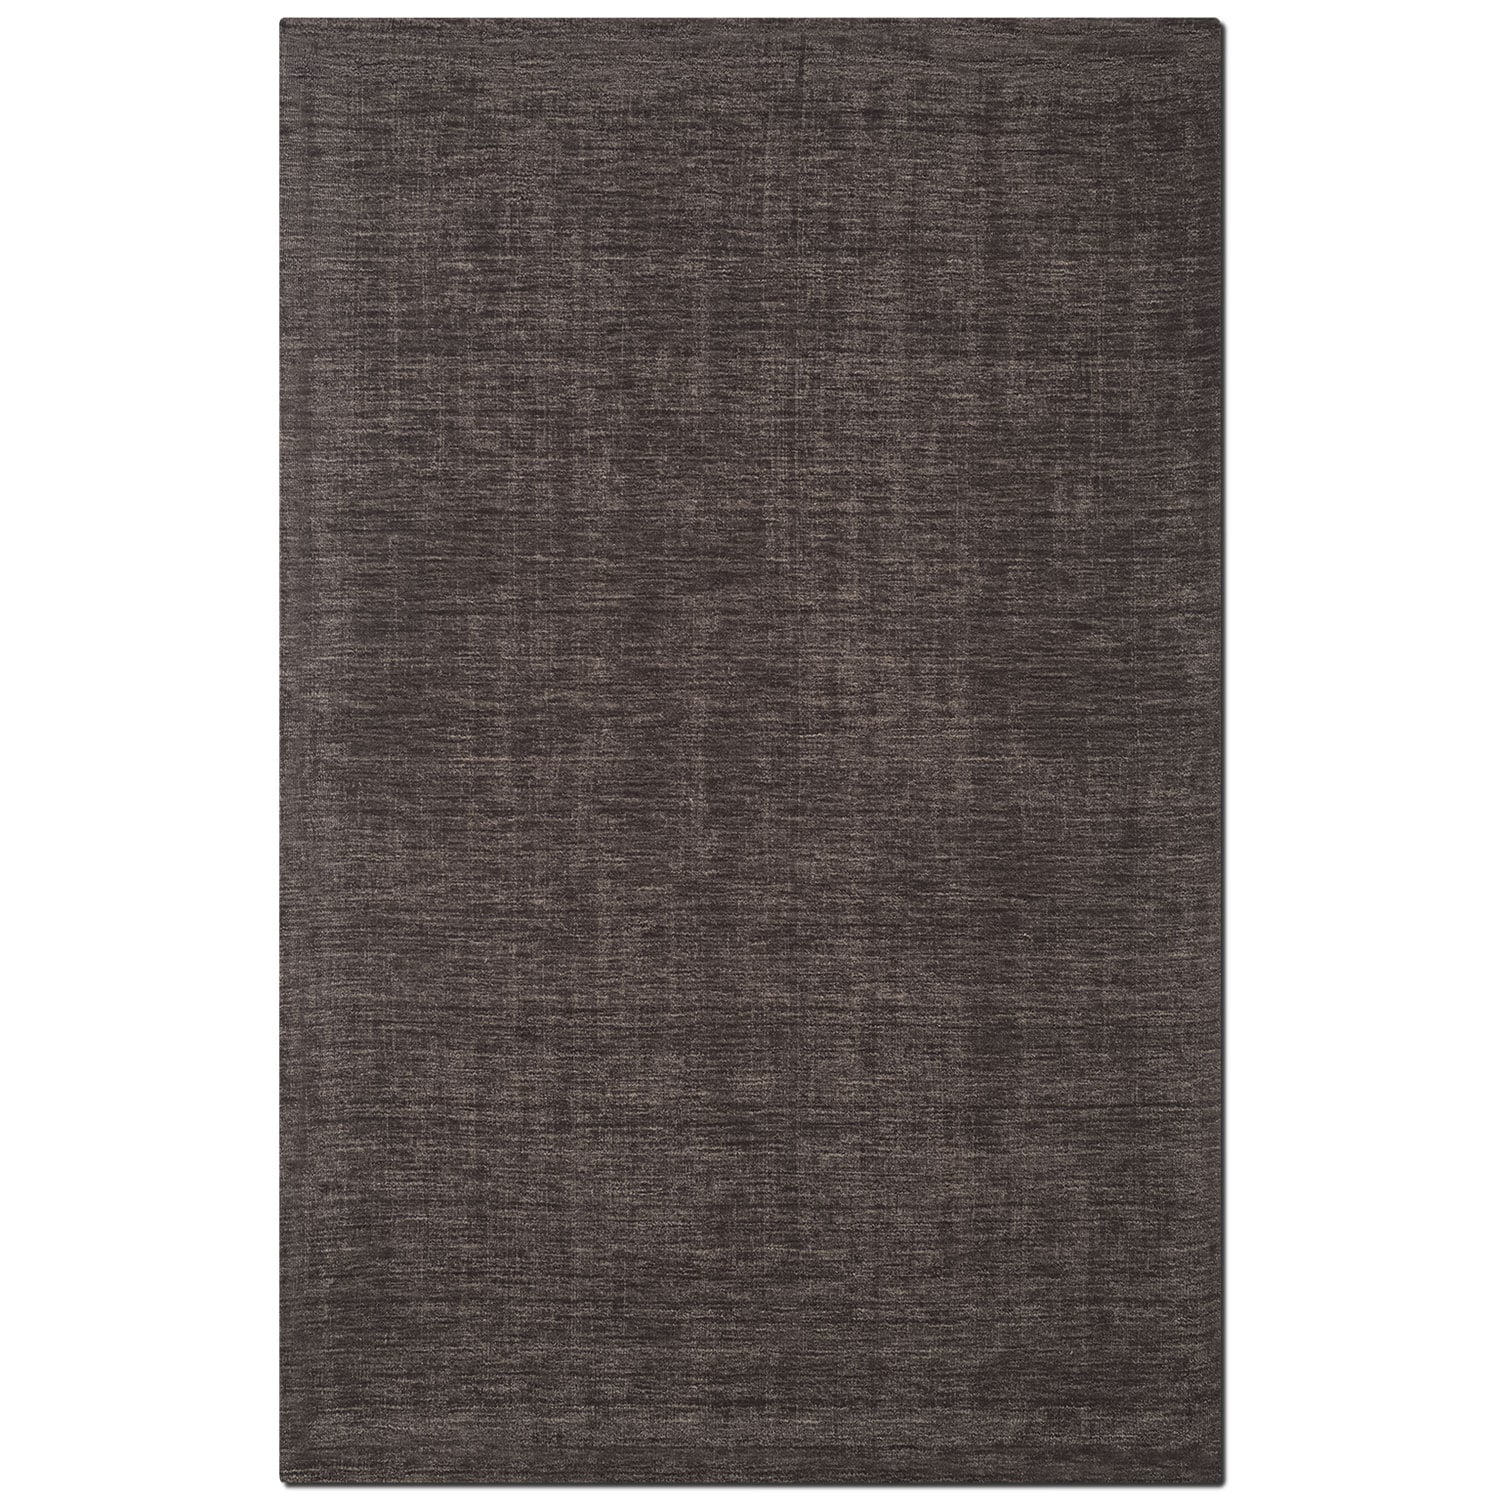 Rugs - Basics Area Rug - Charcoal